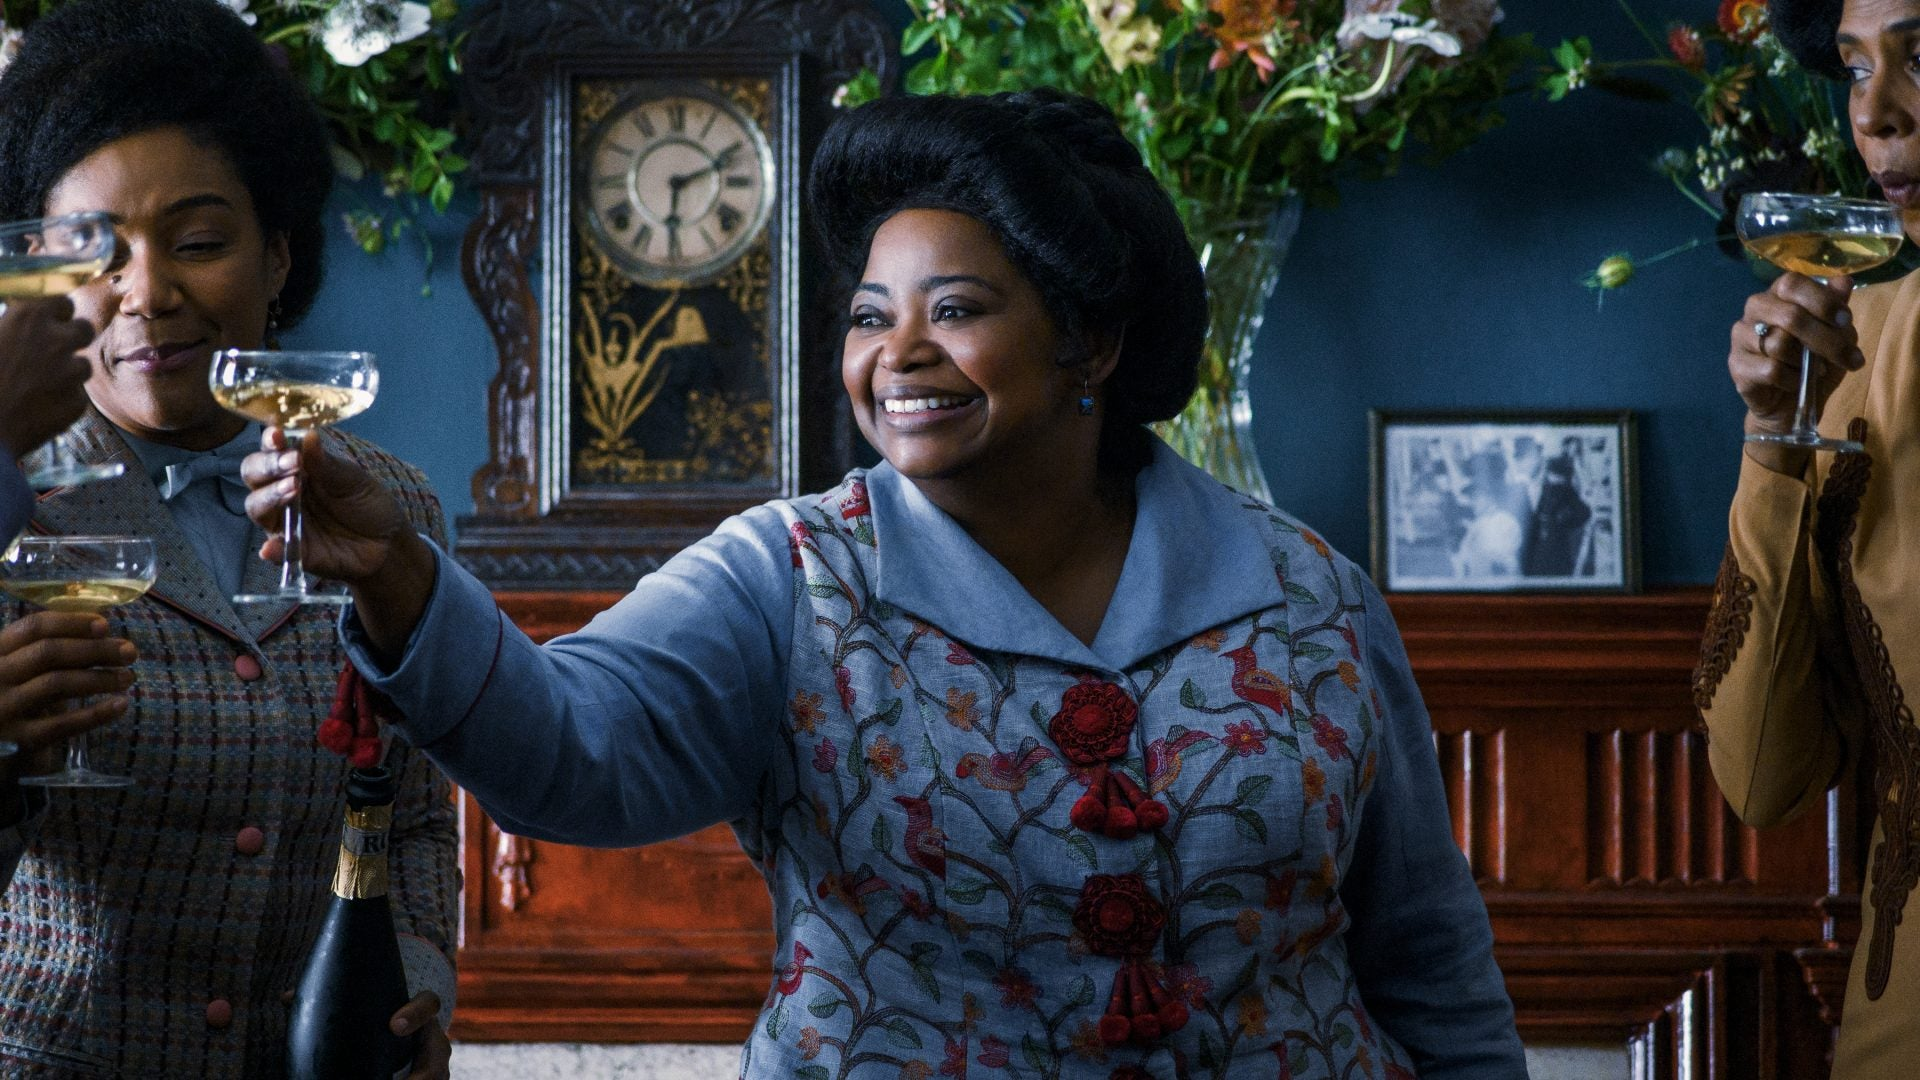 Here's Your First Look At Octavia Spencer And Tiffany Haddish in Netflix's Madam C.J. Walker Series